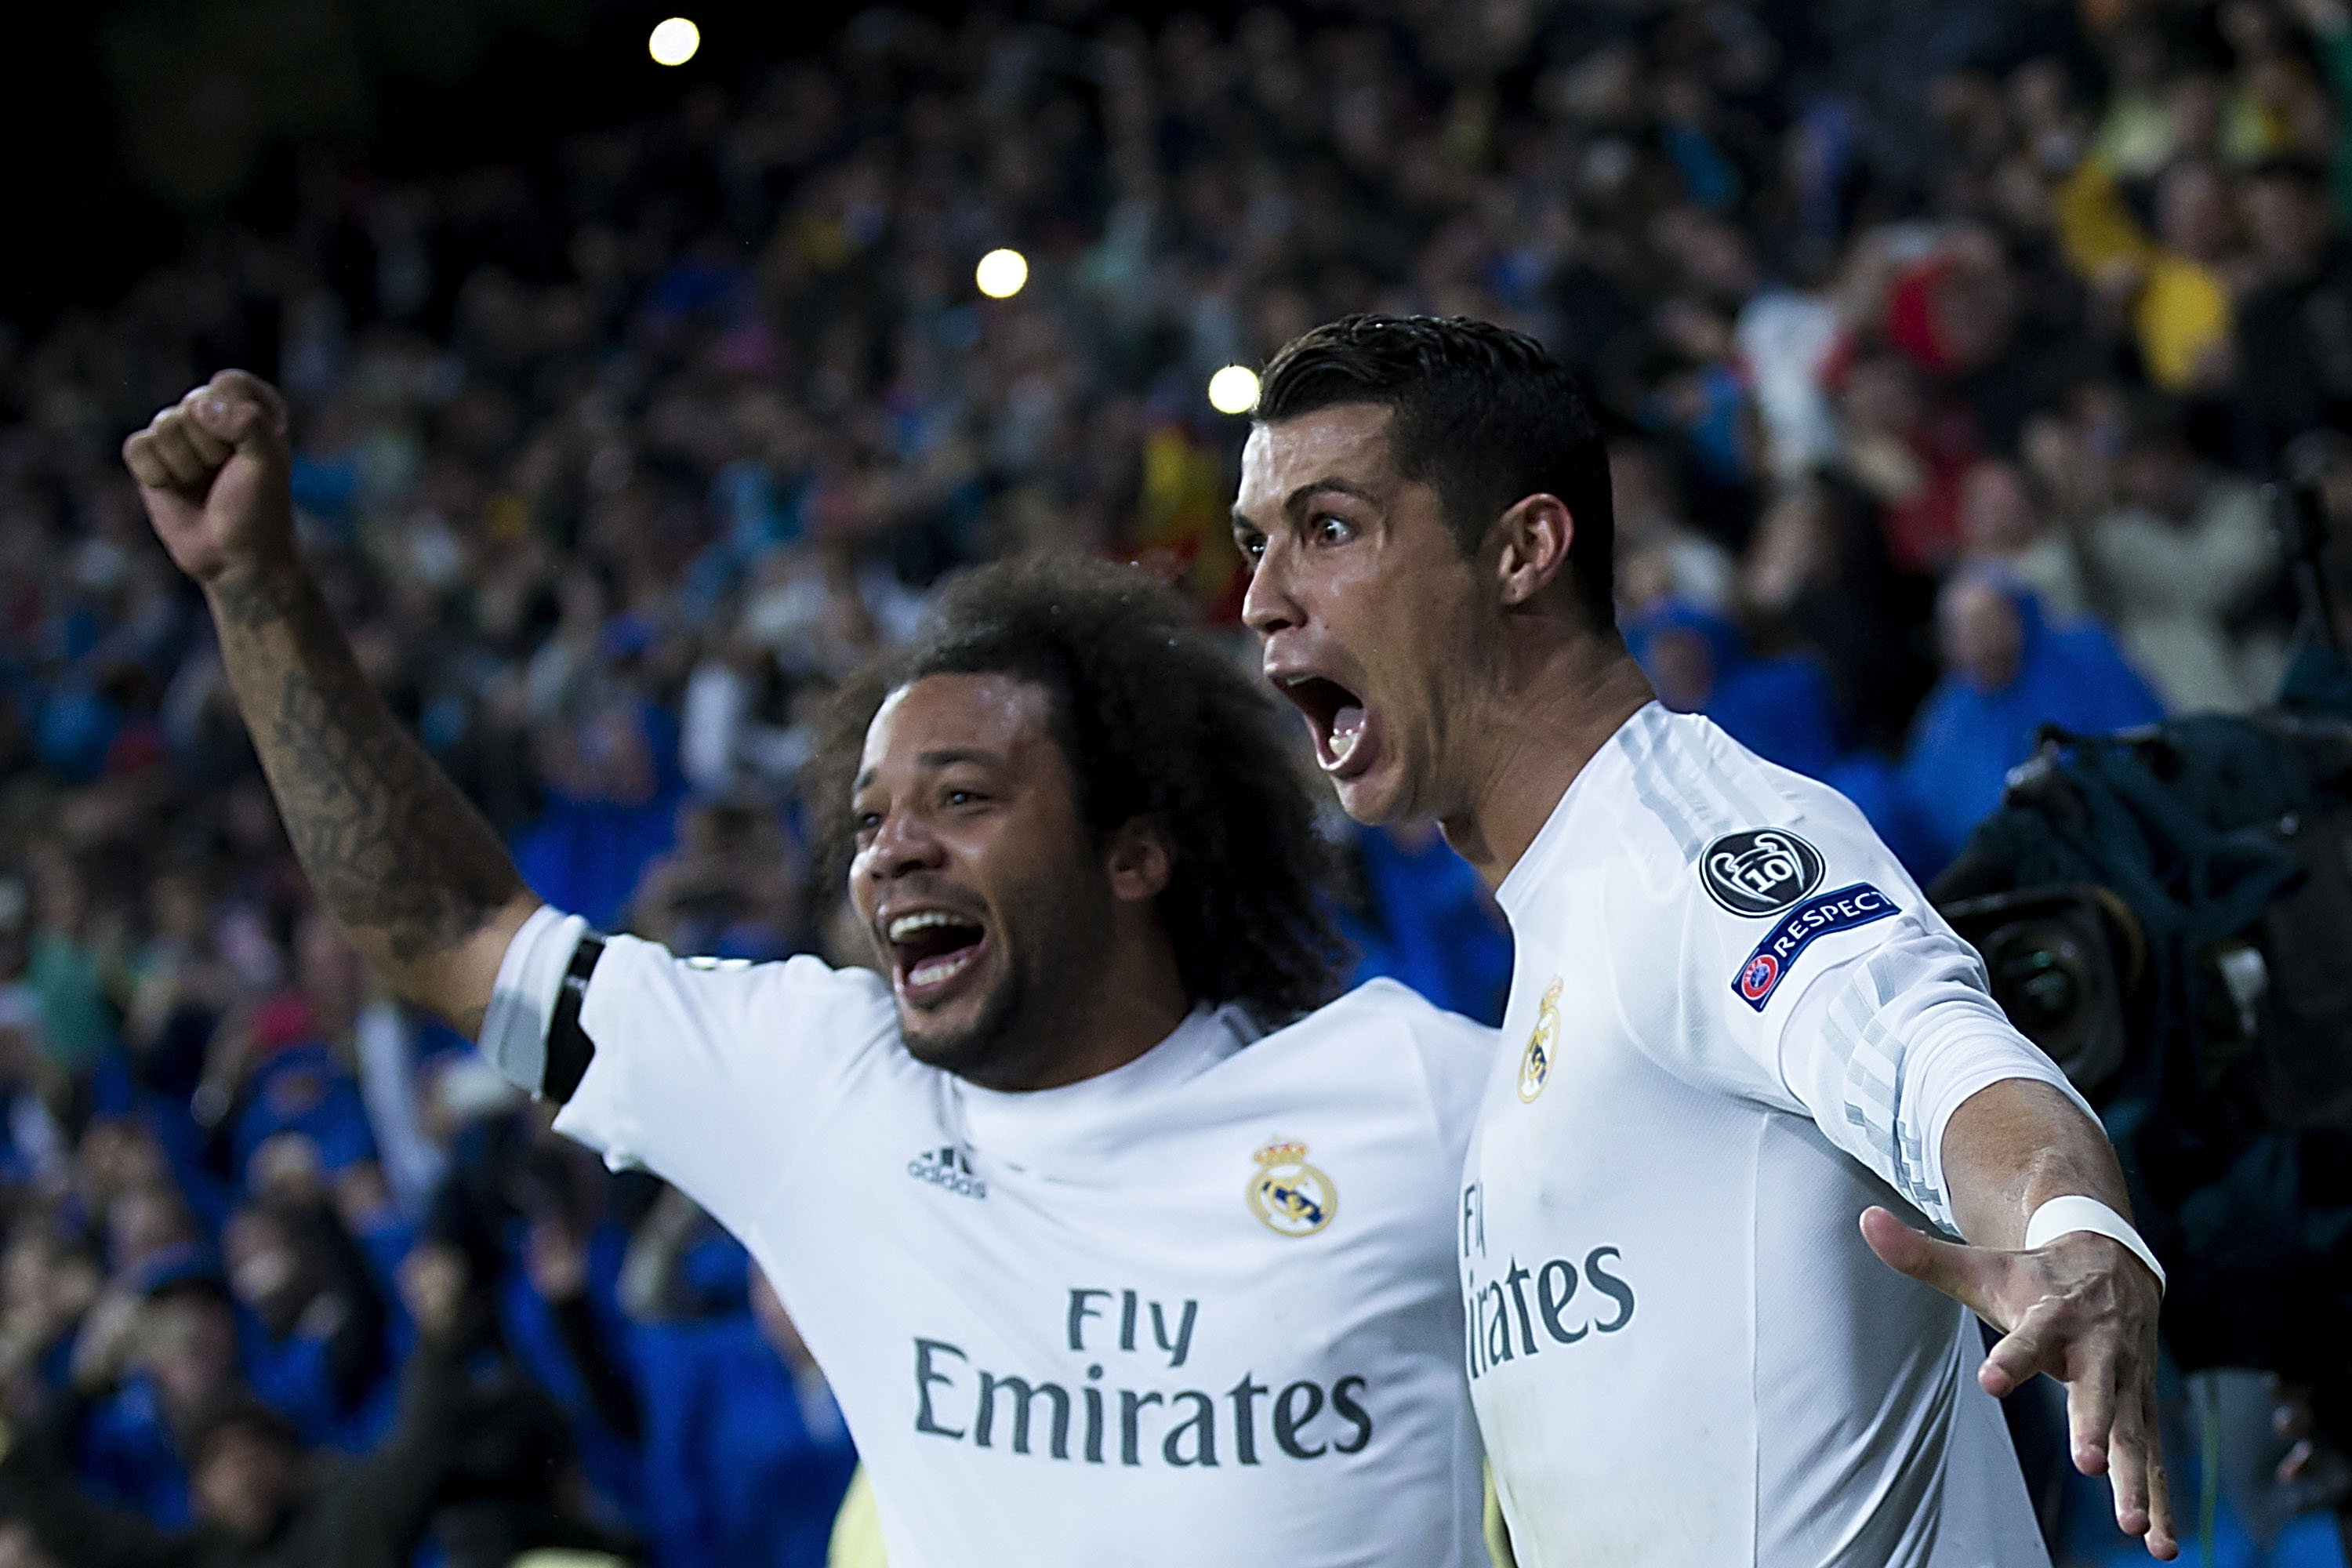 Real Madrid vs. Manchester City odds, Real Madrid Manchester City odds, Real Madrid  Manchester City moneyline, Real Madrid Manchester City spread, Real Madrid vs. Manchester City odds, Real Madrid Manchester City betting